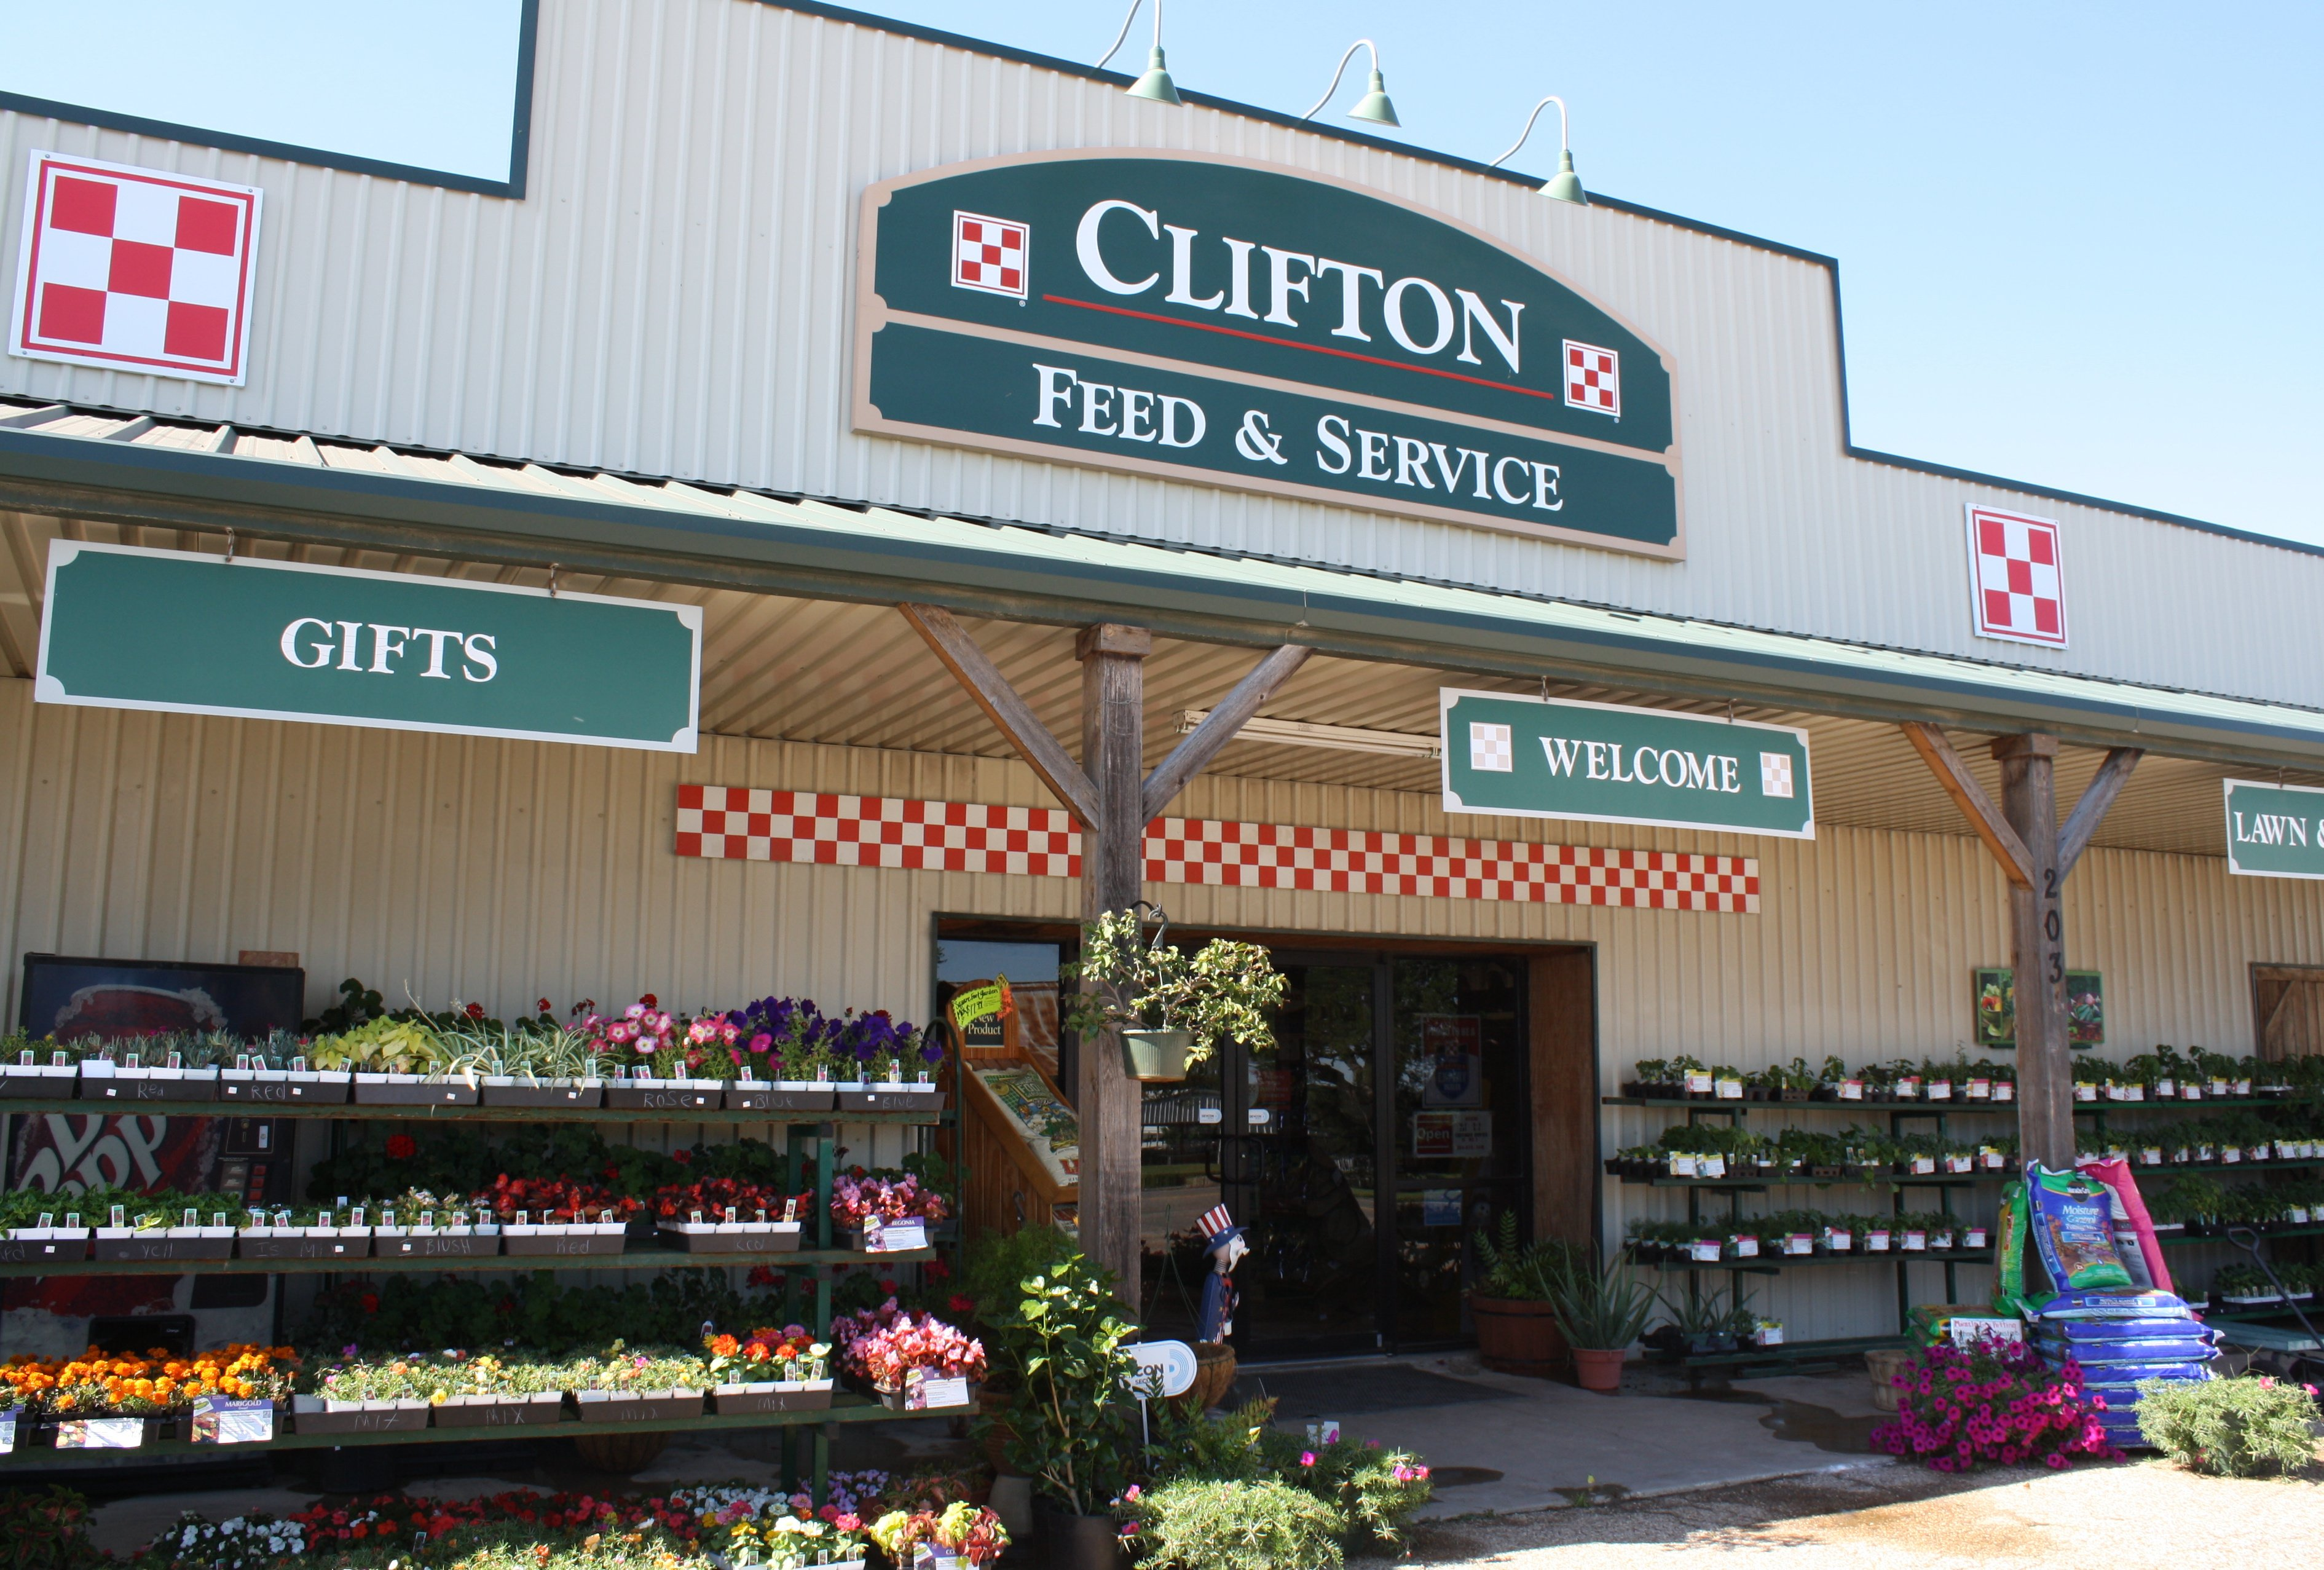 Clifton Feed & Service store front